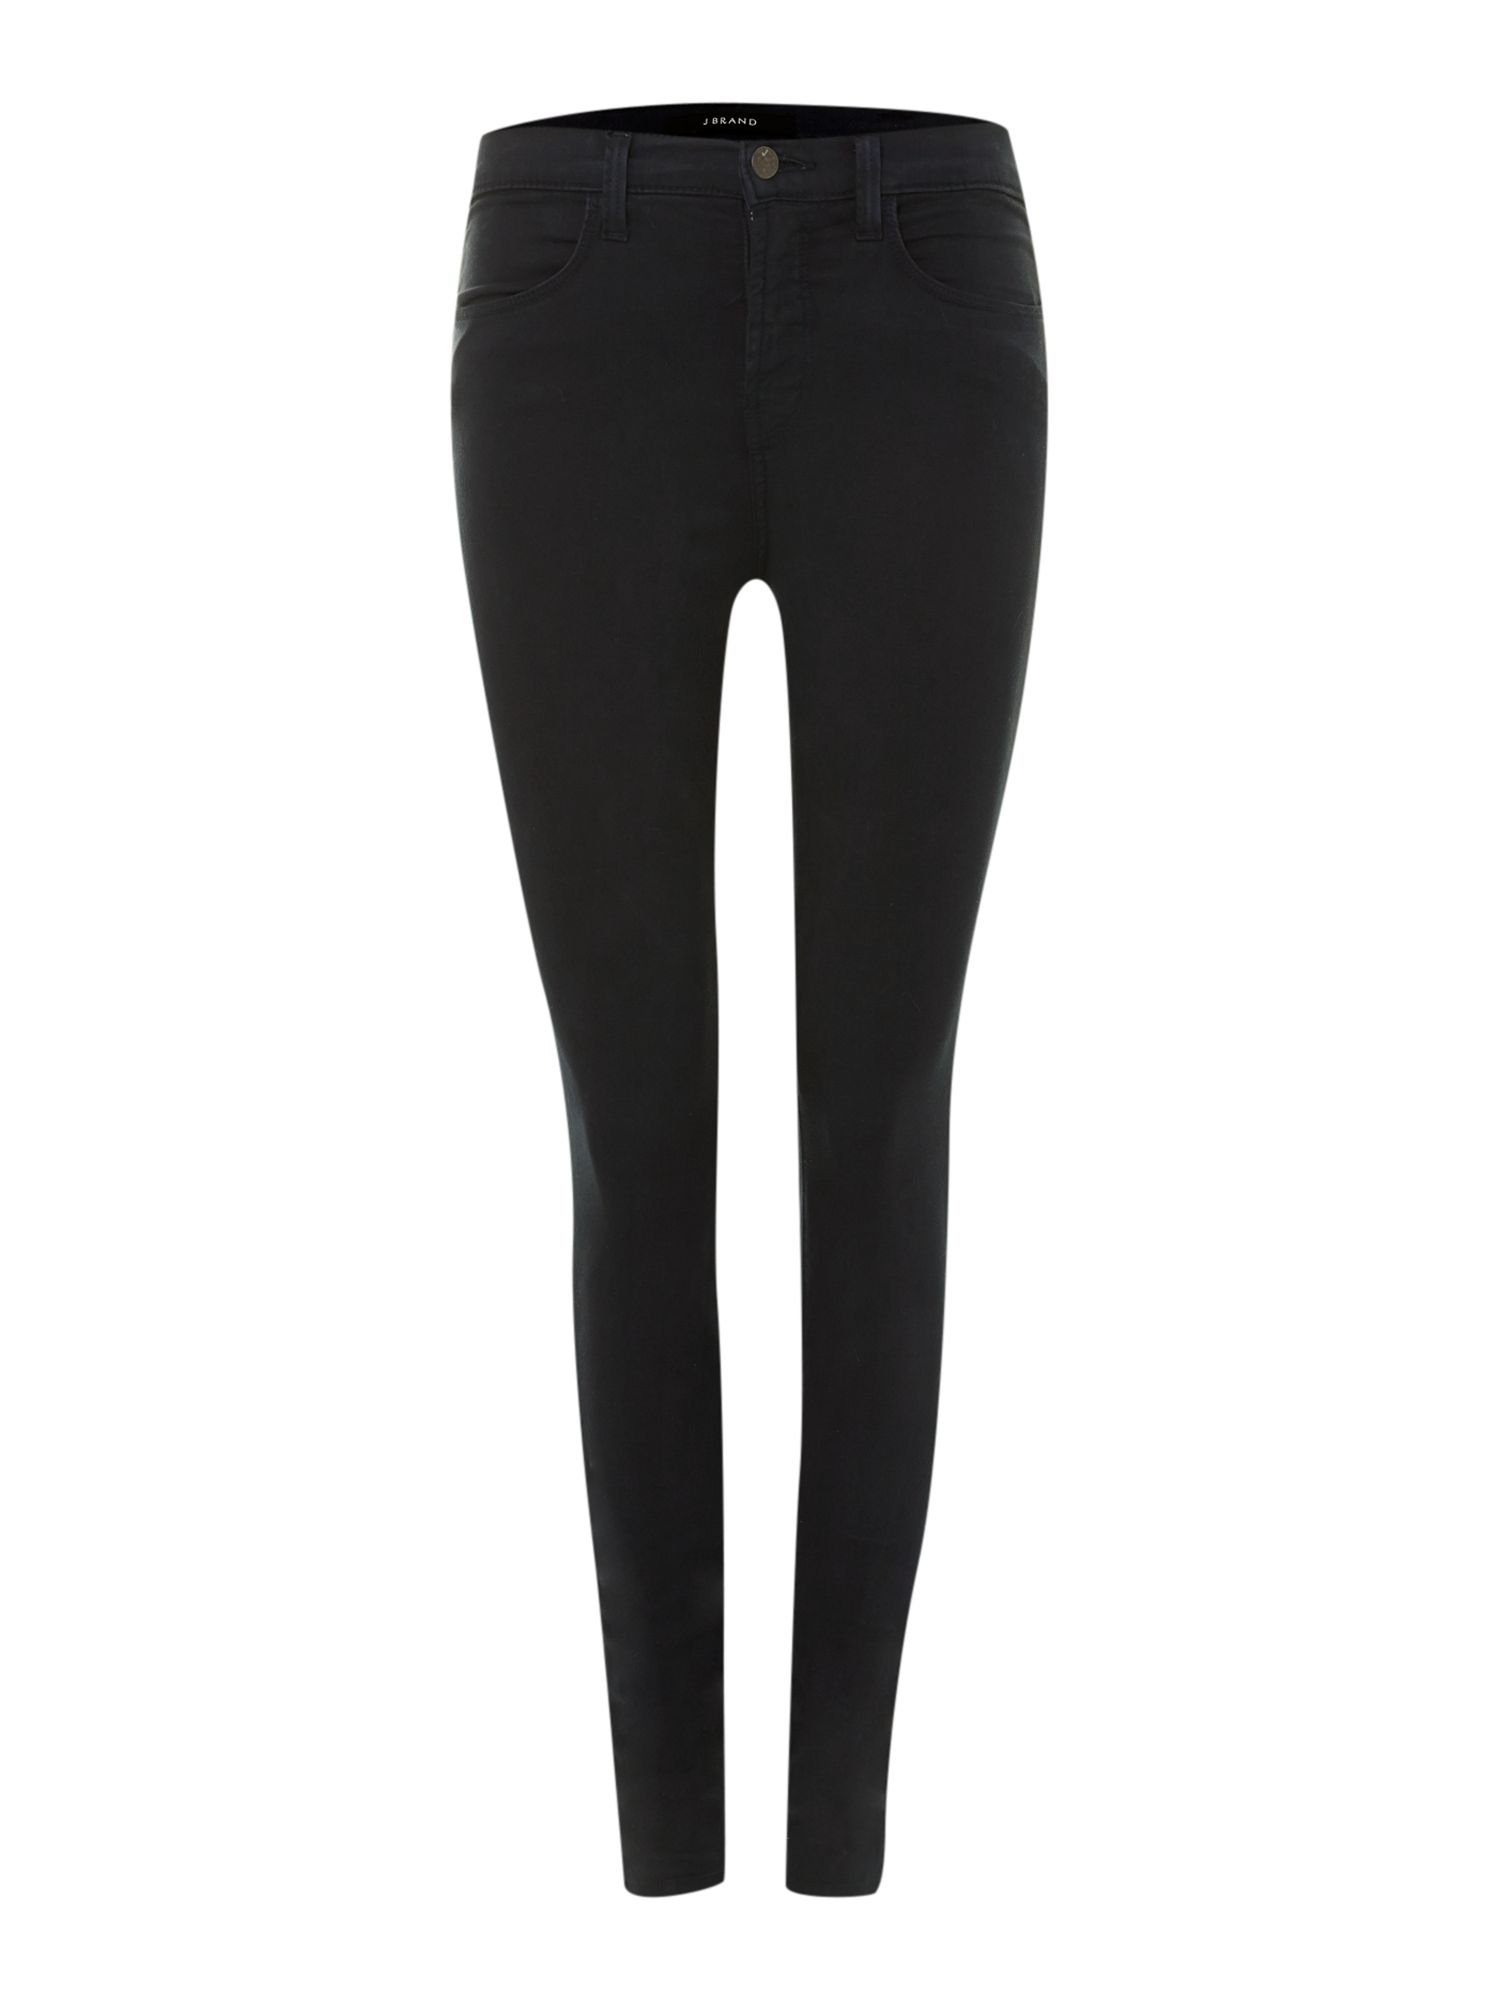 Maria high-rise skinny jeans in Carbon Blue